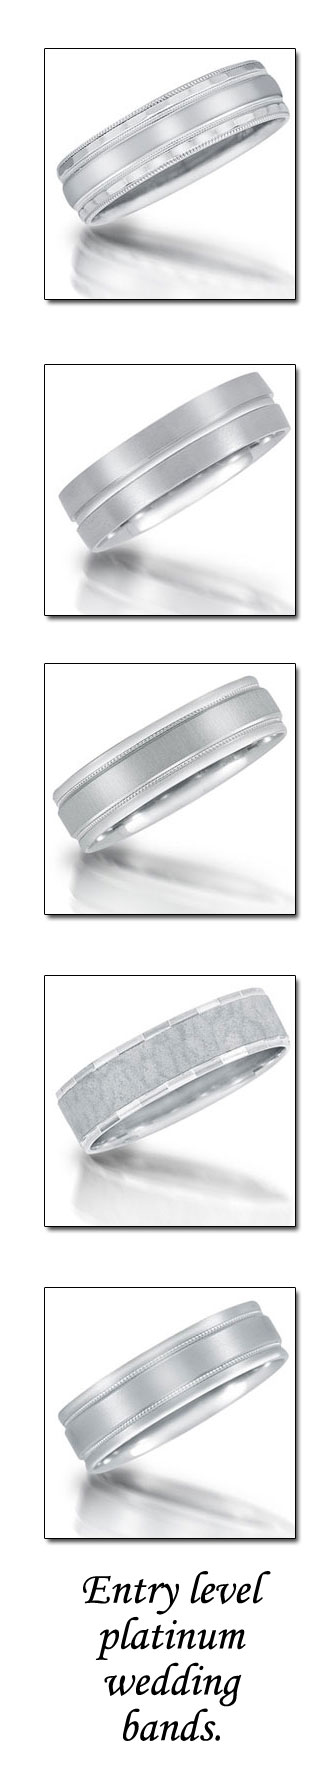 Platinum wedding bands by Novell (entry level).